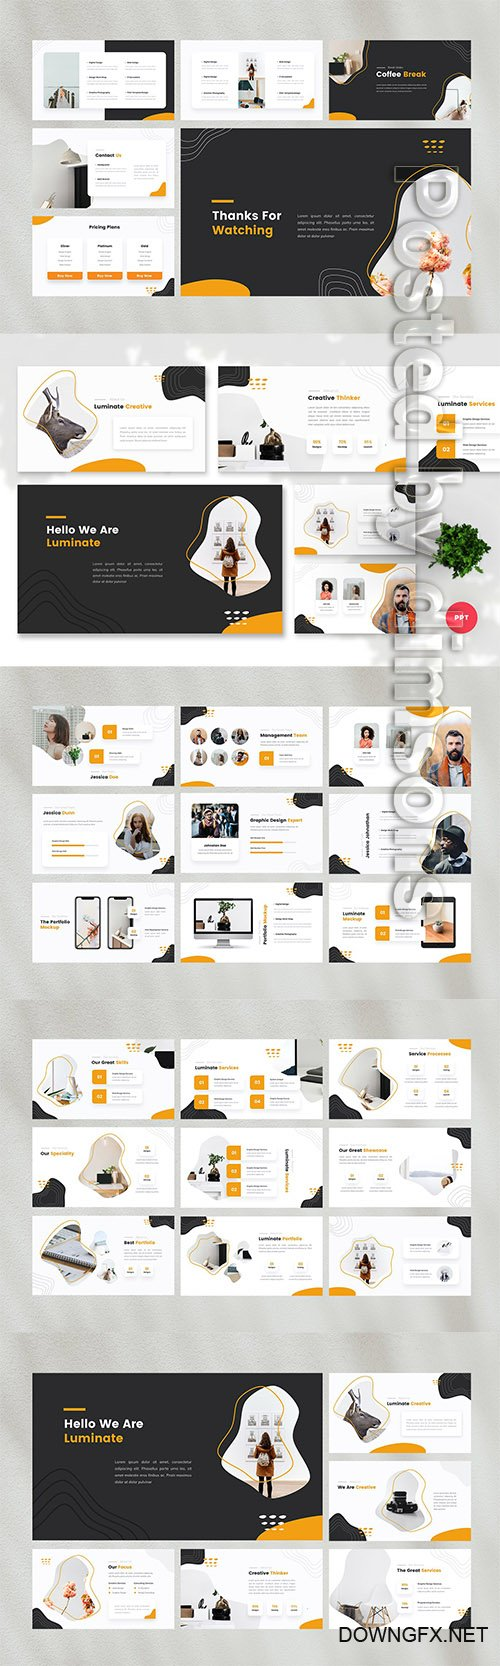 Luminate - Creative PowerPoint, Keynote, Google Slides Templates